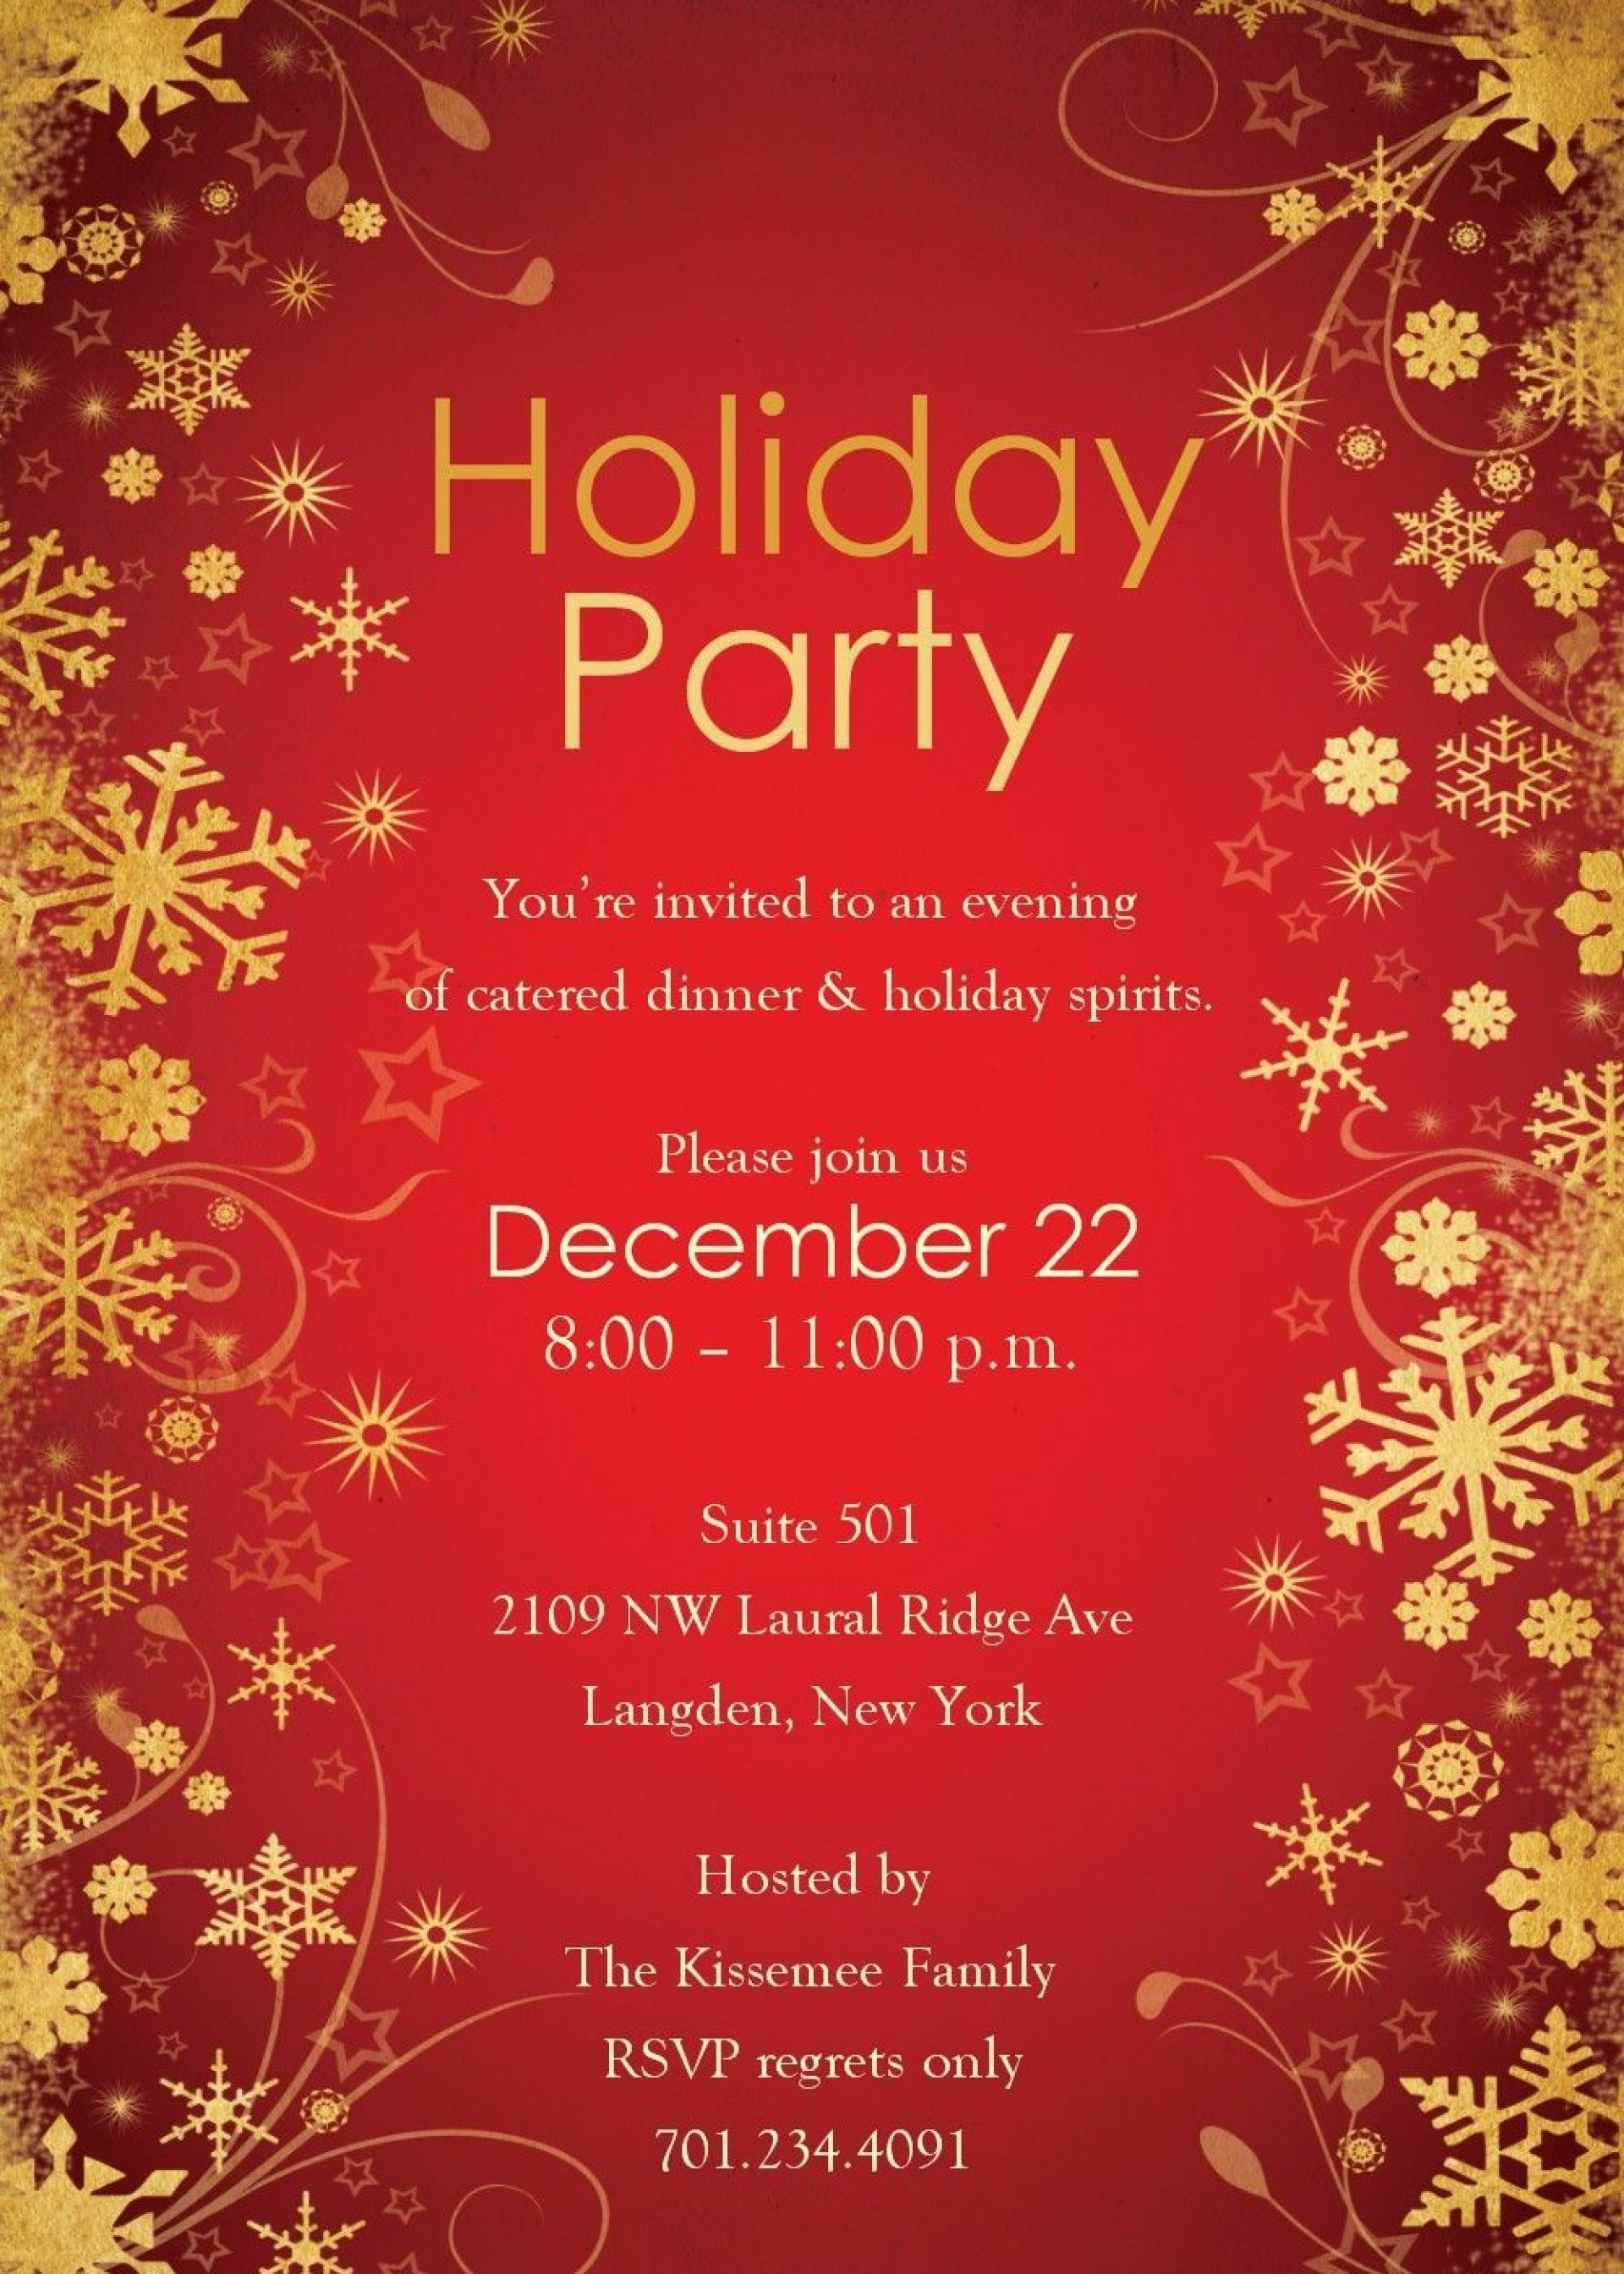 005 Unusual Xma Party Invite Template Free Highest Quality  Holiday Invitation Word Printable Office Christma Download1920